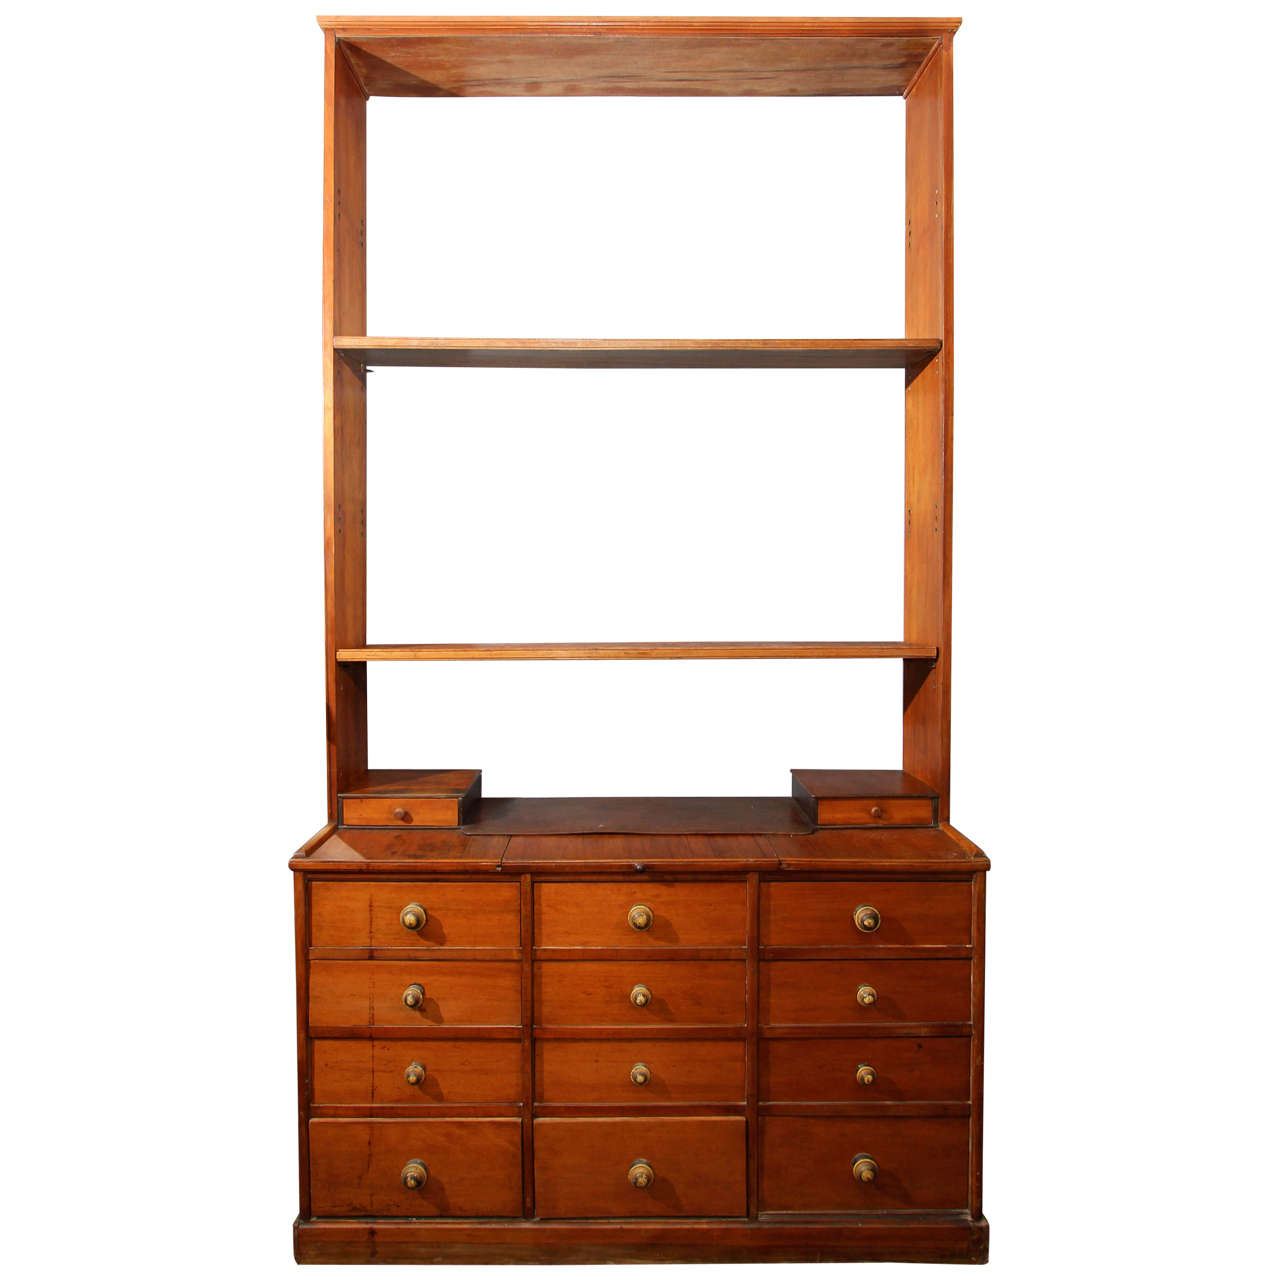 French Apothecary Cabinet For Sale At 1stdibs